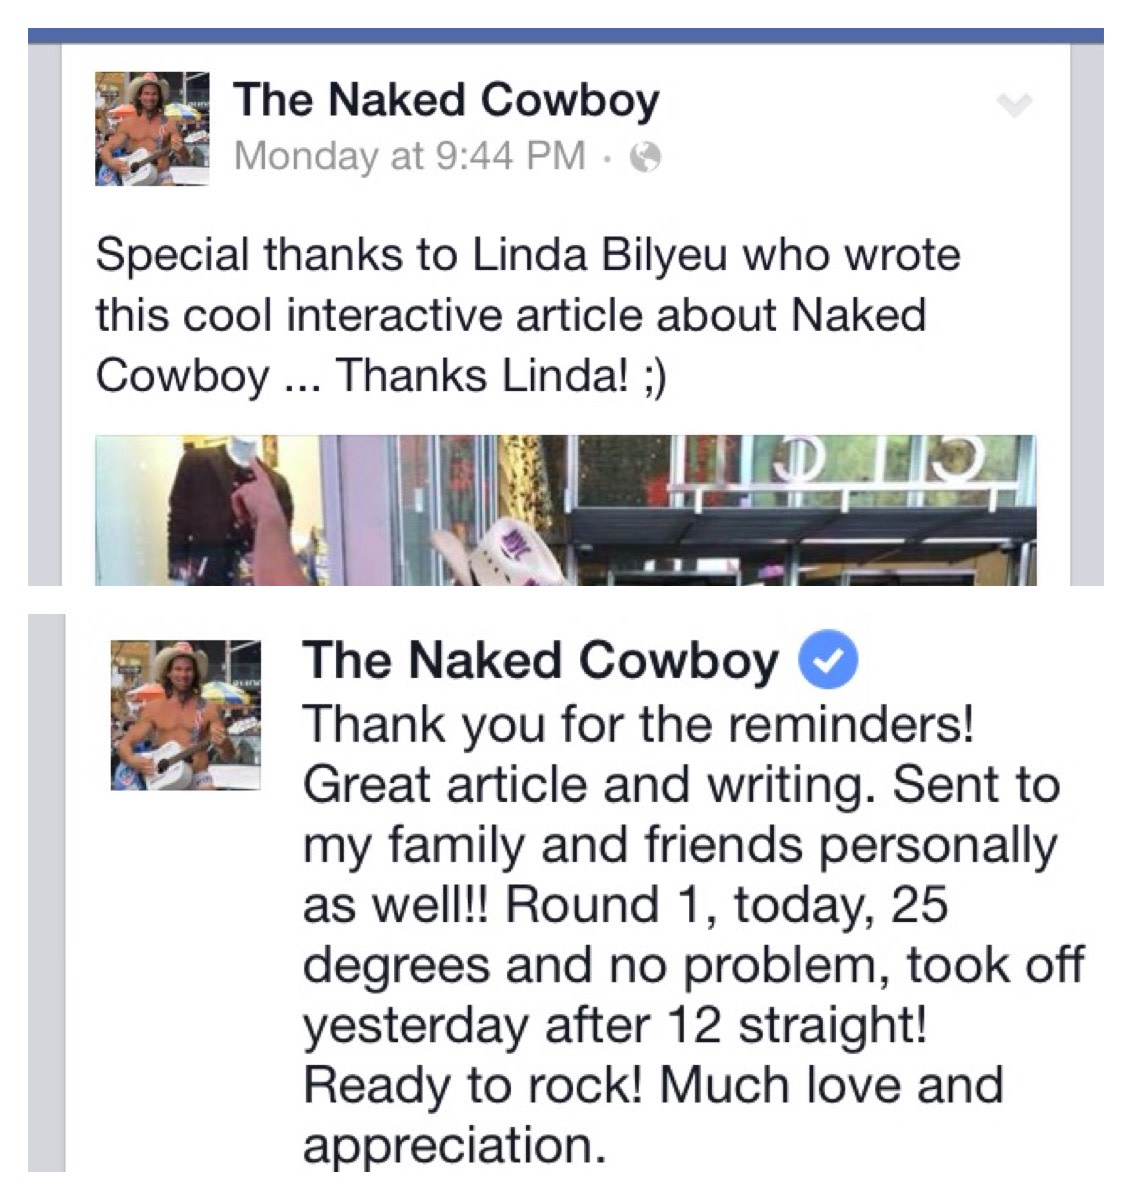 The Naked Cowboy expressed his appreciation of this tribute article via his Facebook page!